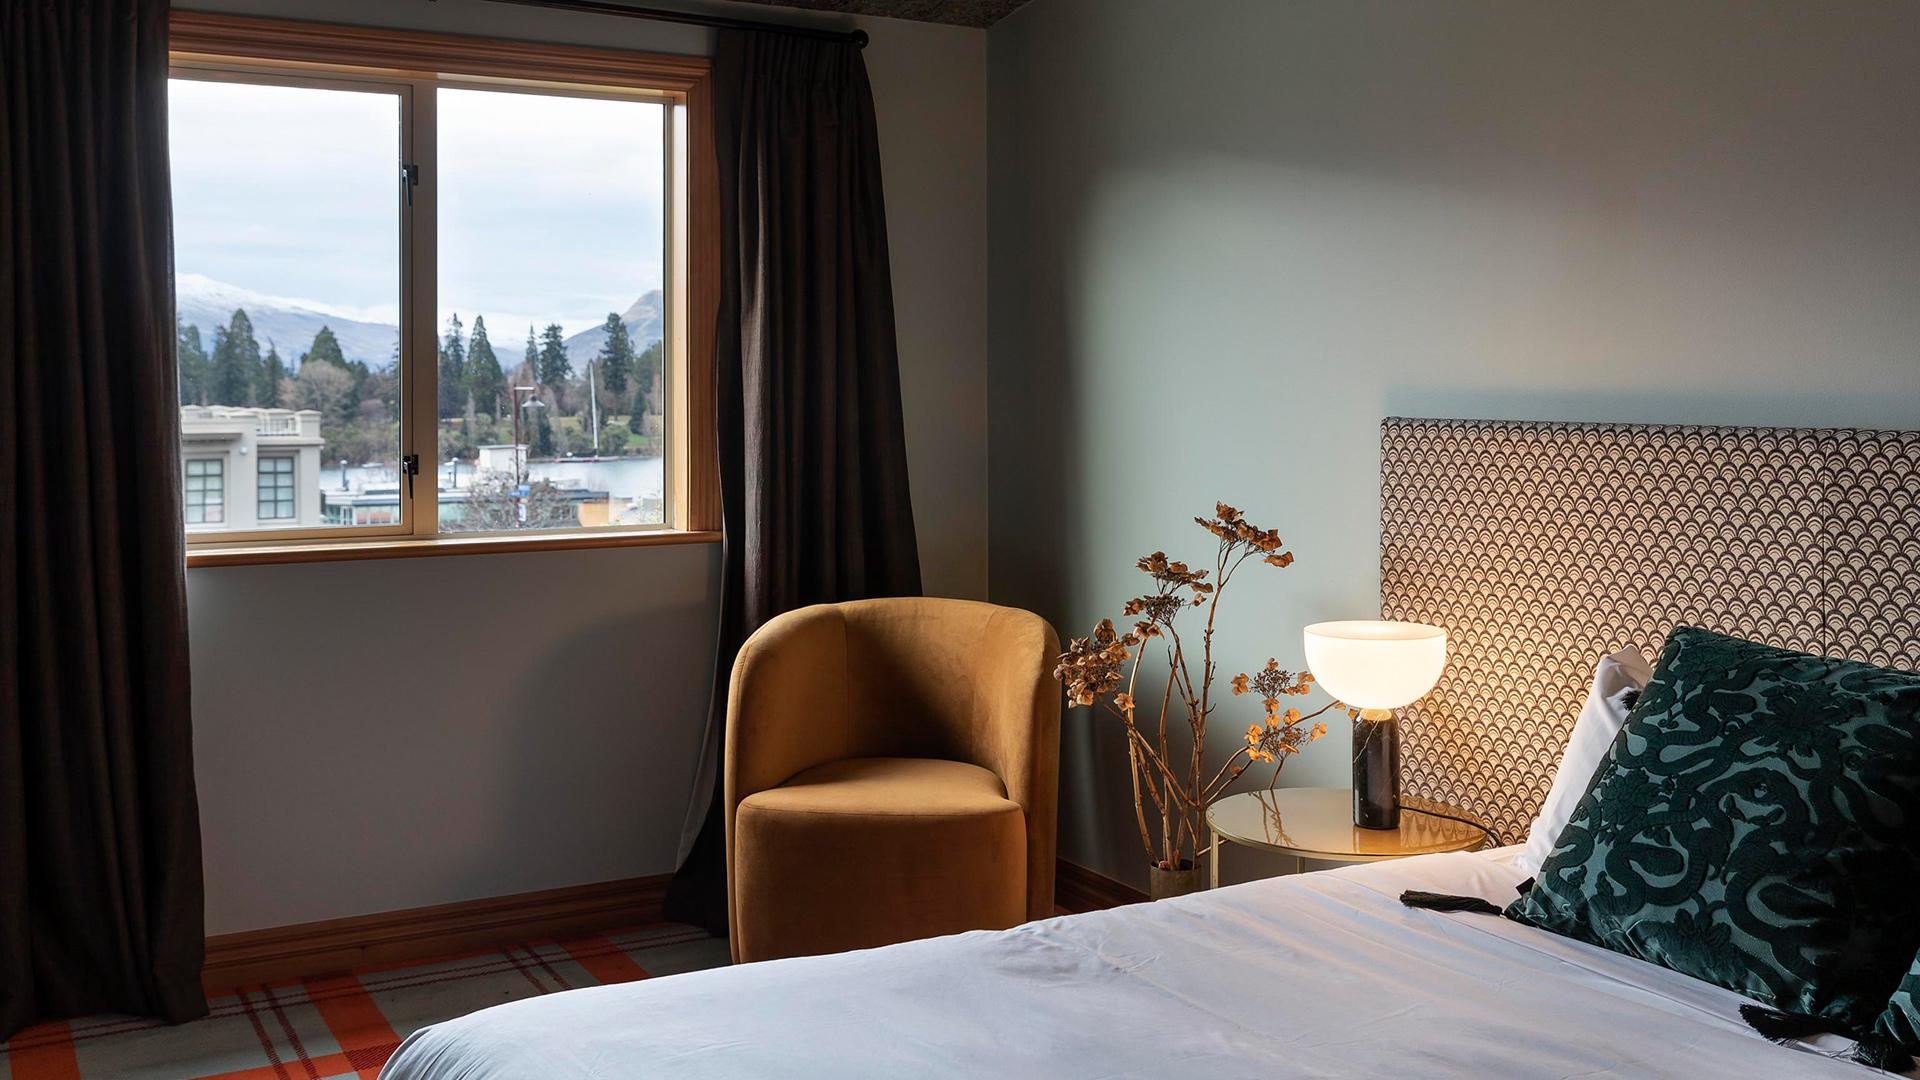 Oasis Room image 1 at The Dairy Private Hotel by Naumi Hotels by null, Otago, New Zealand